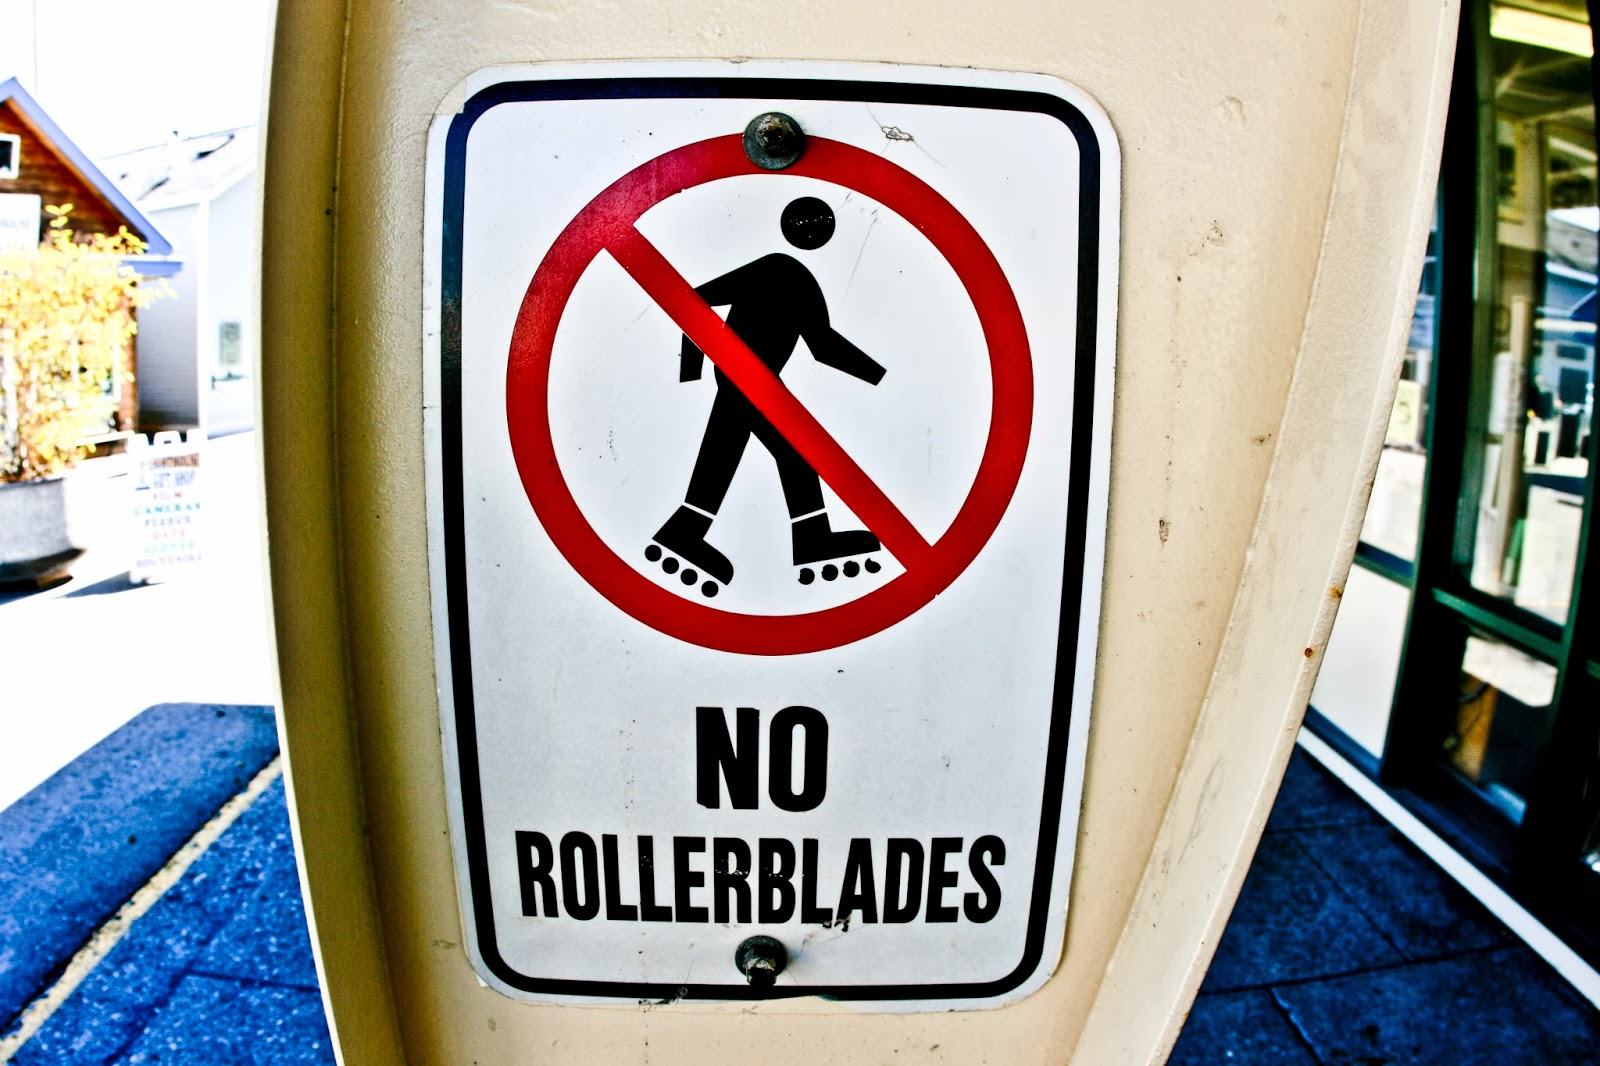 A 'No Rollerblades' street sign in Seward, Alaska.